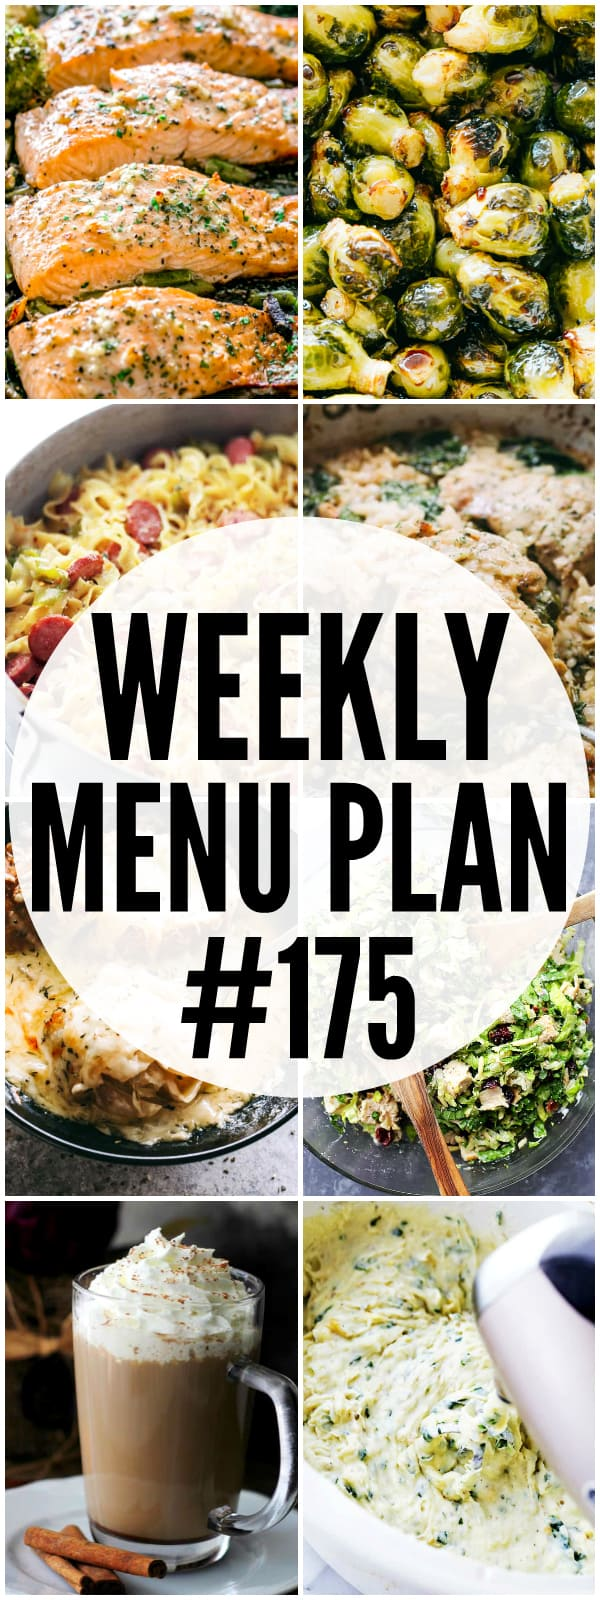 WEEKLY MENU PLAN (#175) - A delicious collection of dinner, side dish and dessert recipes to help you plan your weekly menu and make life easier for you!